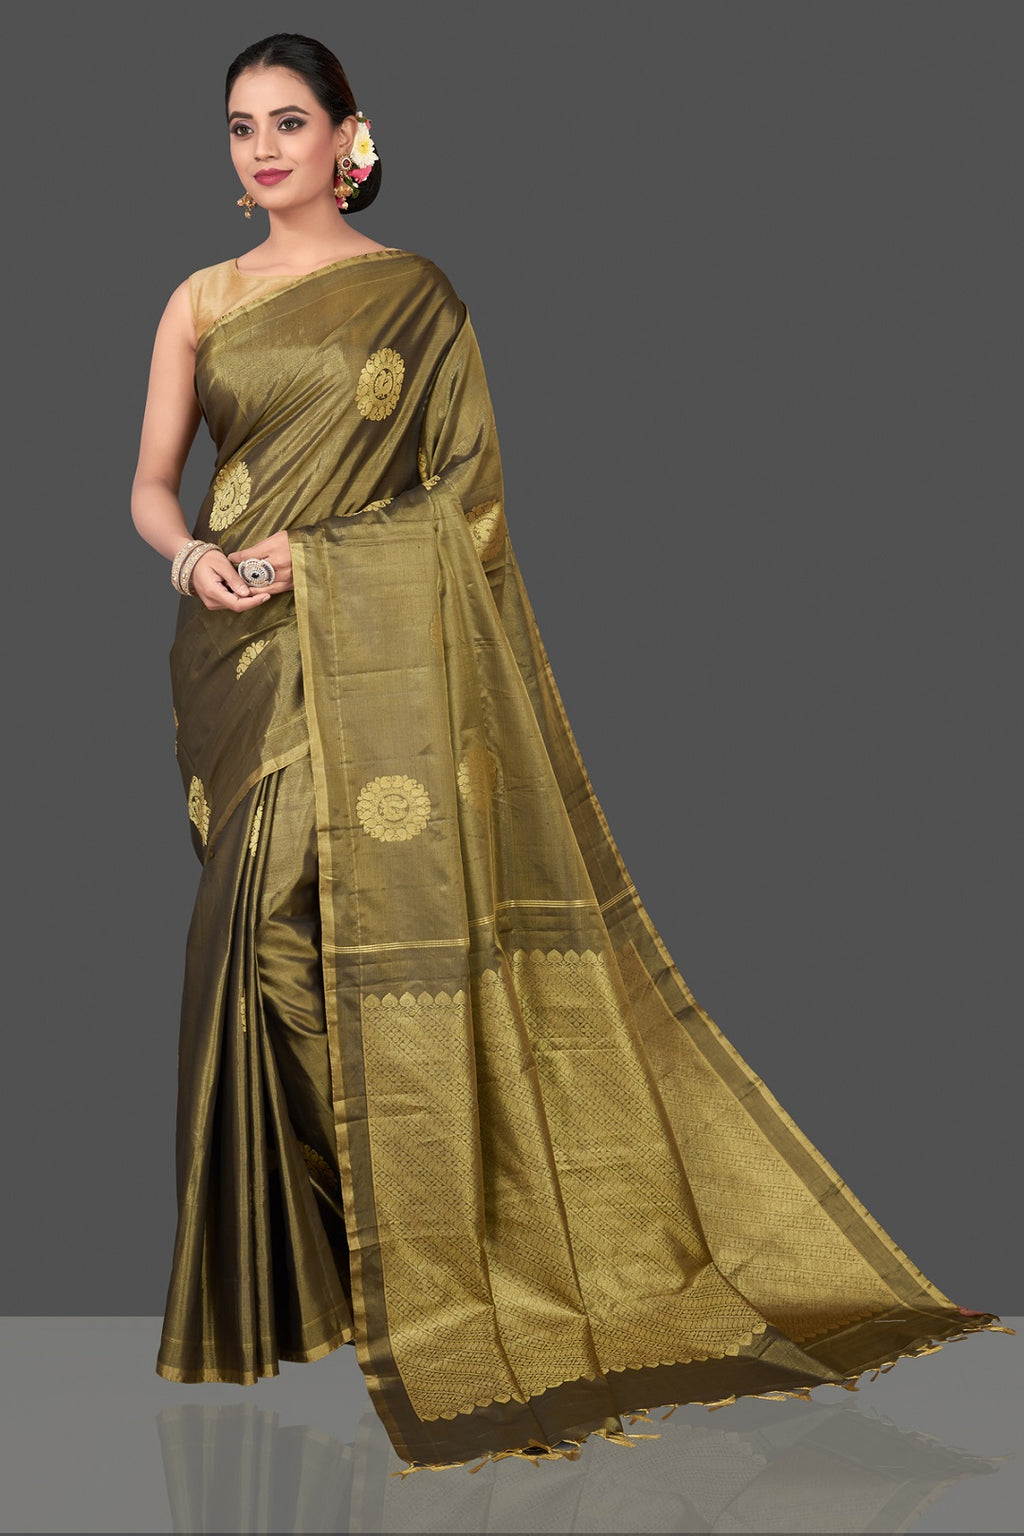 Buy gorgeous olive green handloom borderless Kanjivaram silk saree online in USA with golden zari buta. Be the center of attraction at weddings and festive occasions in the stunning handwoven silk sarees, Kanchipuram silk sarees, zari work sarees, Banarasi sarees from Pure Elegance Indian saree store in USA.-full view